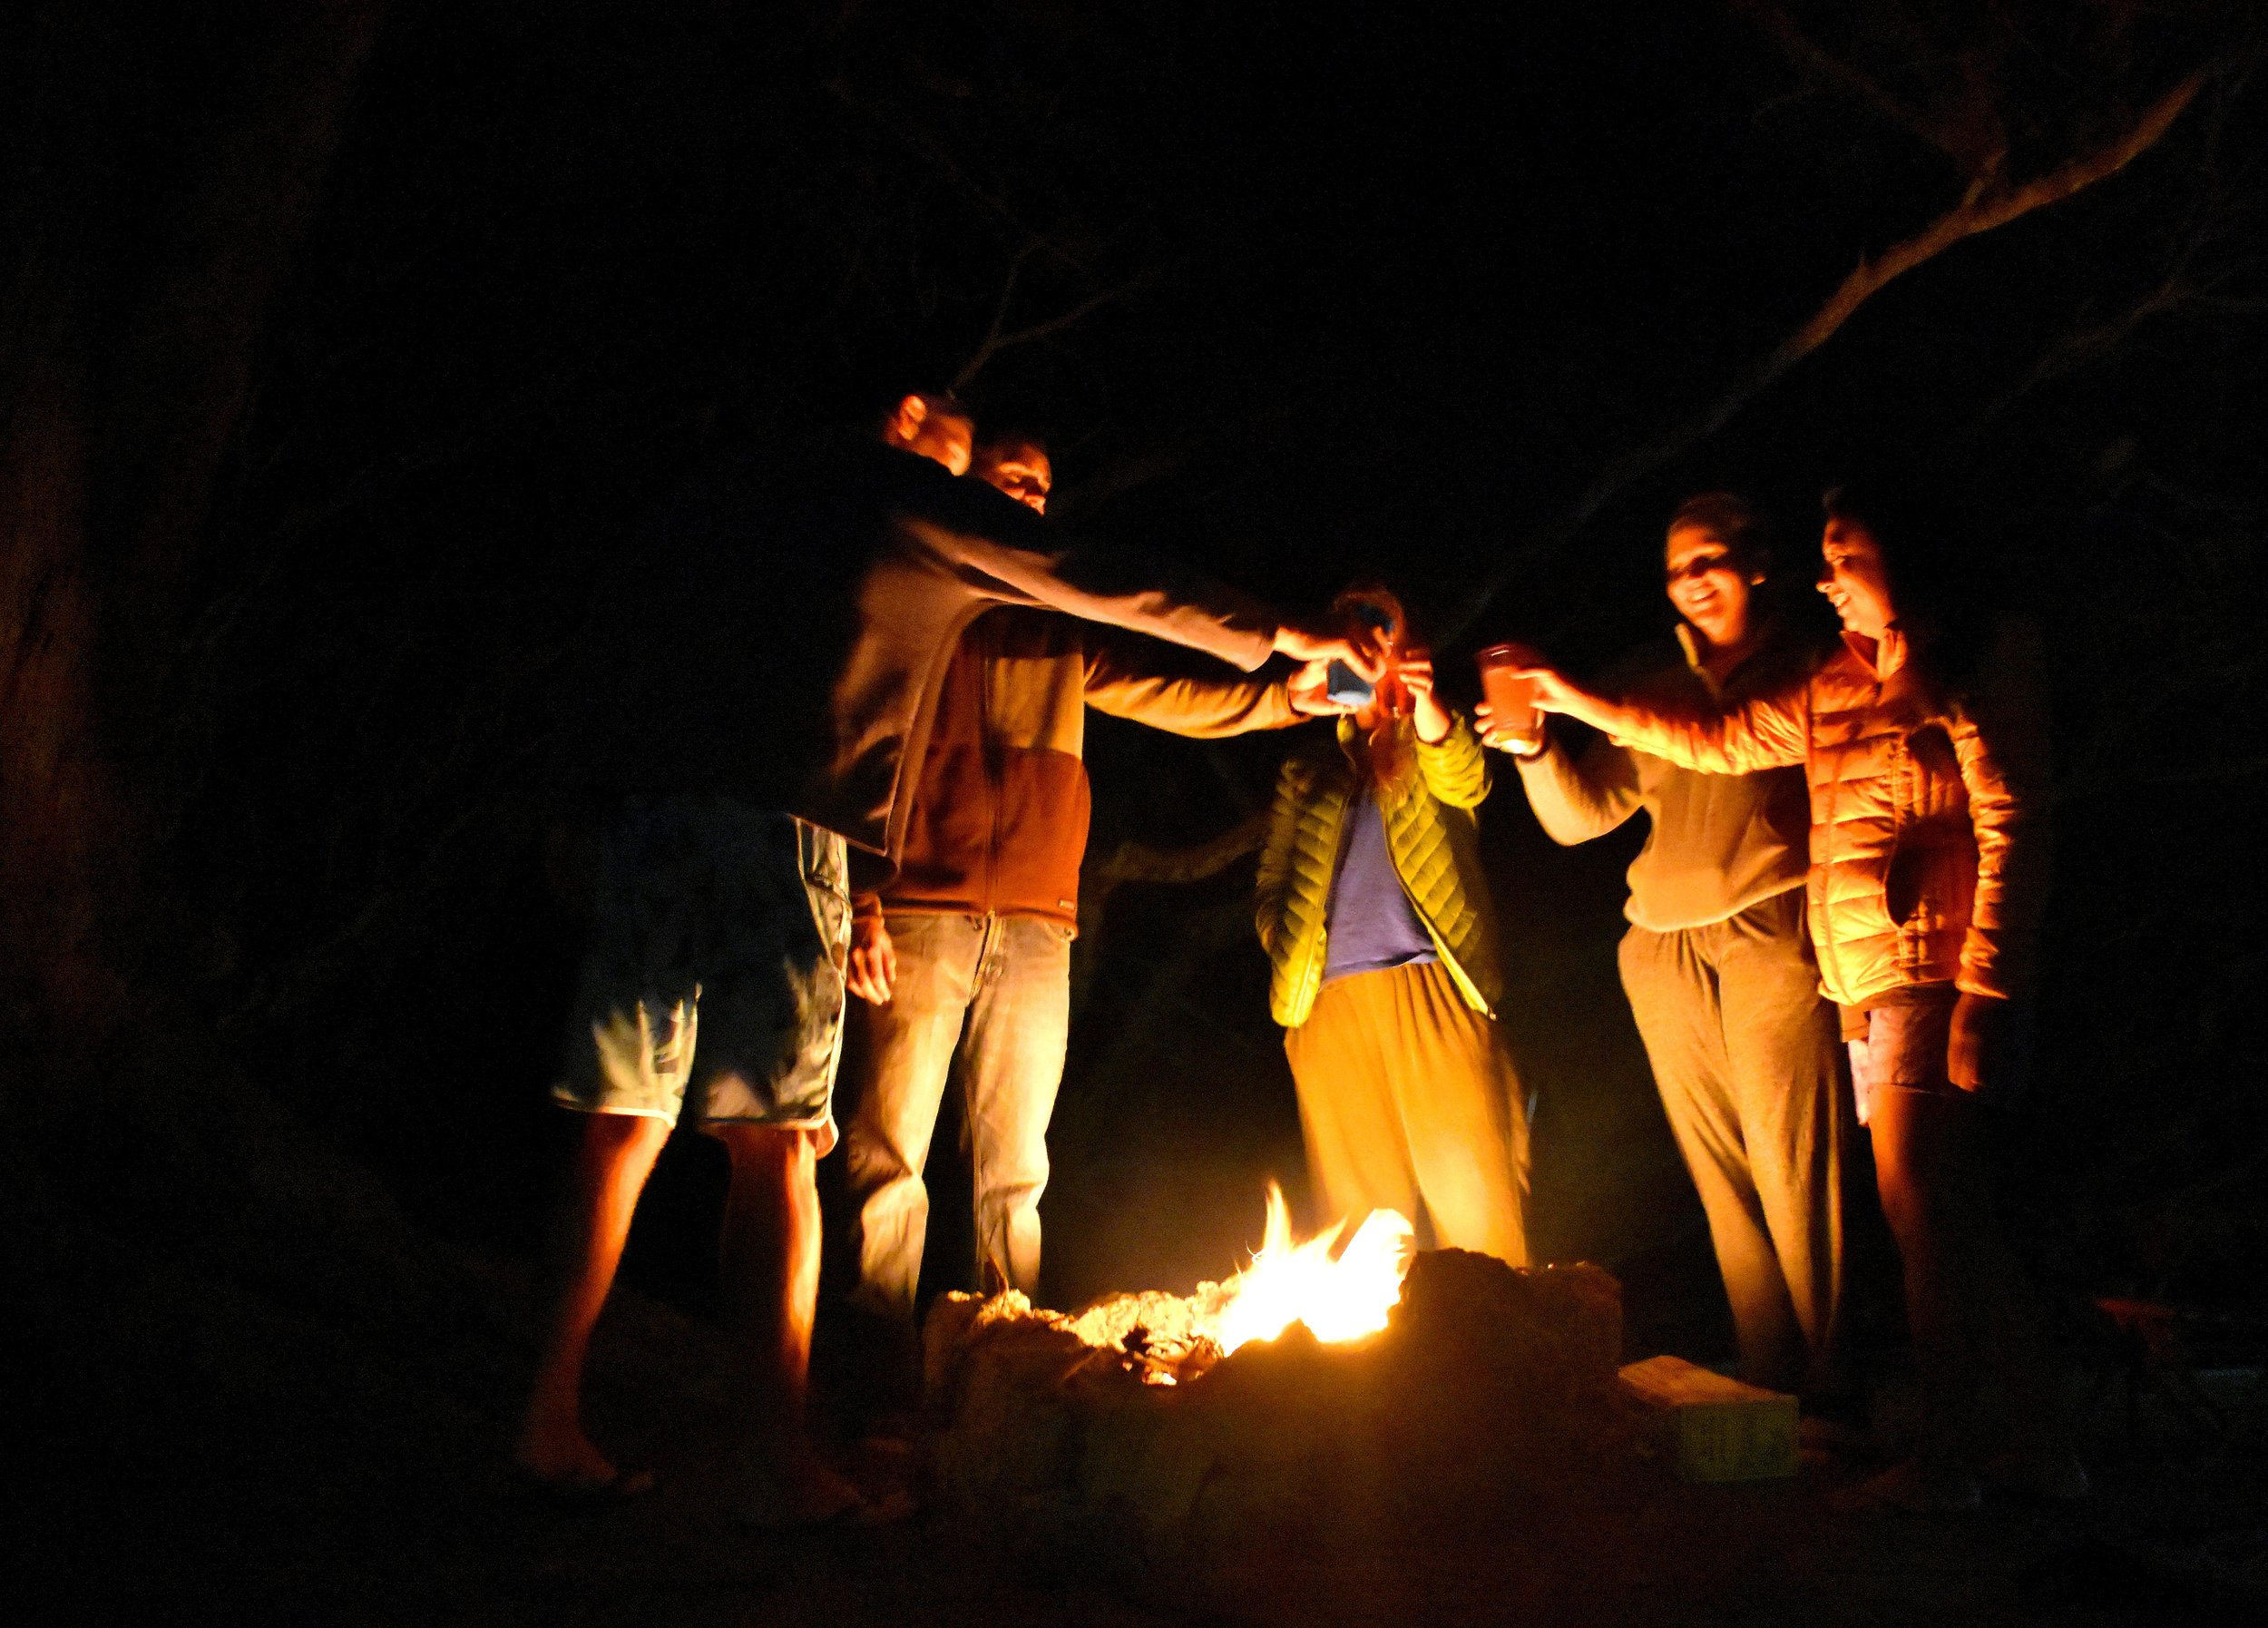 - Camp each night under the stars, sharing stories around the fire from the day.